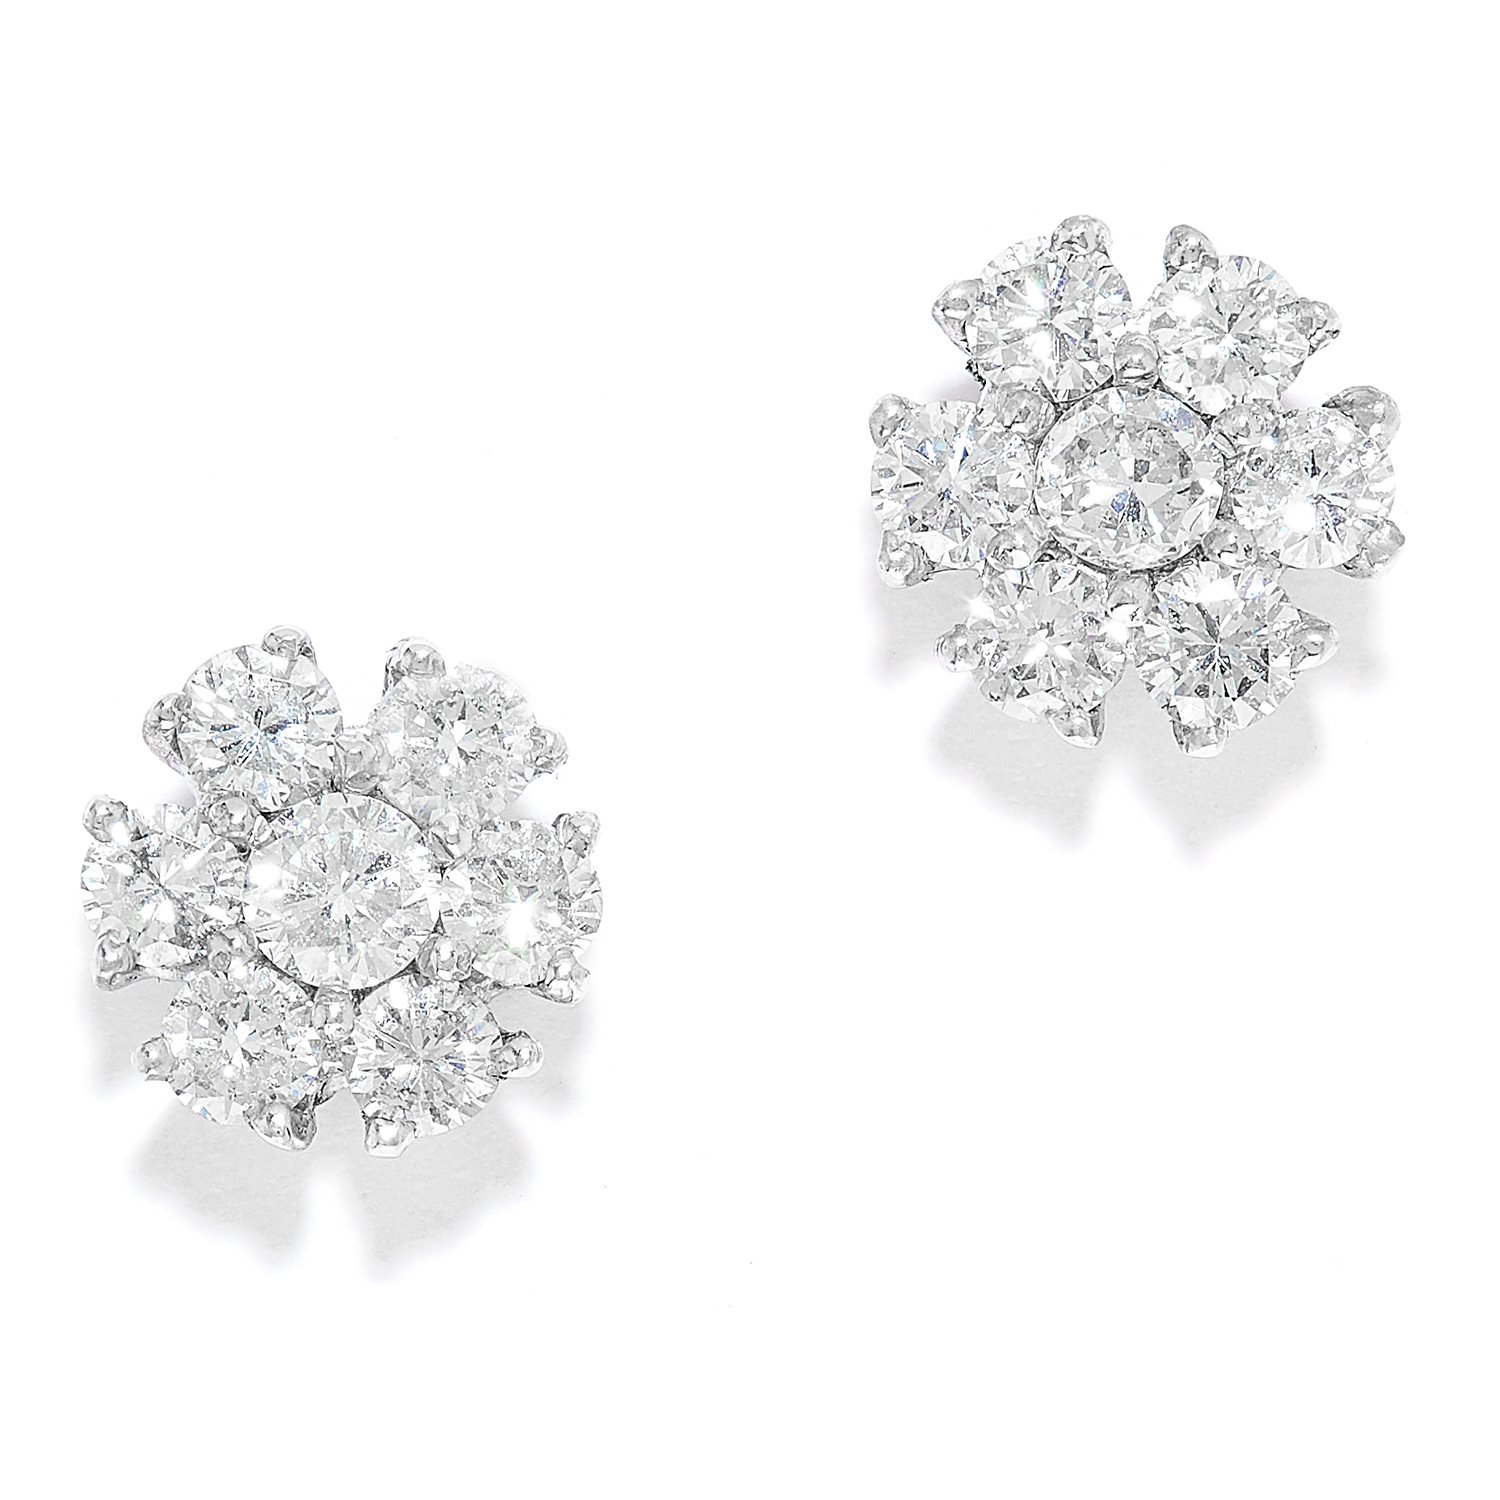 Los 43 - 1.00 CARAT DIAMOND STUD EARRINGS in 18ct white gold, each set with round cut diamonds totalling